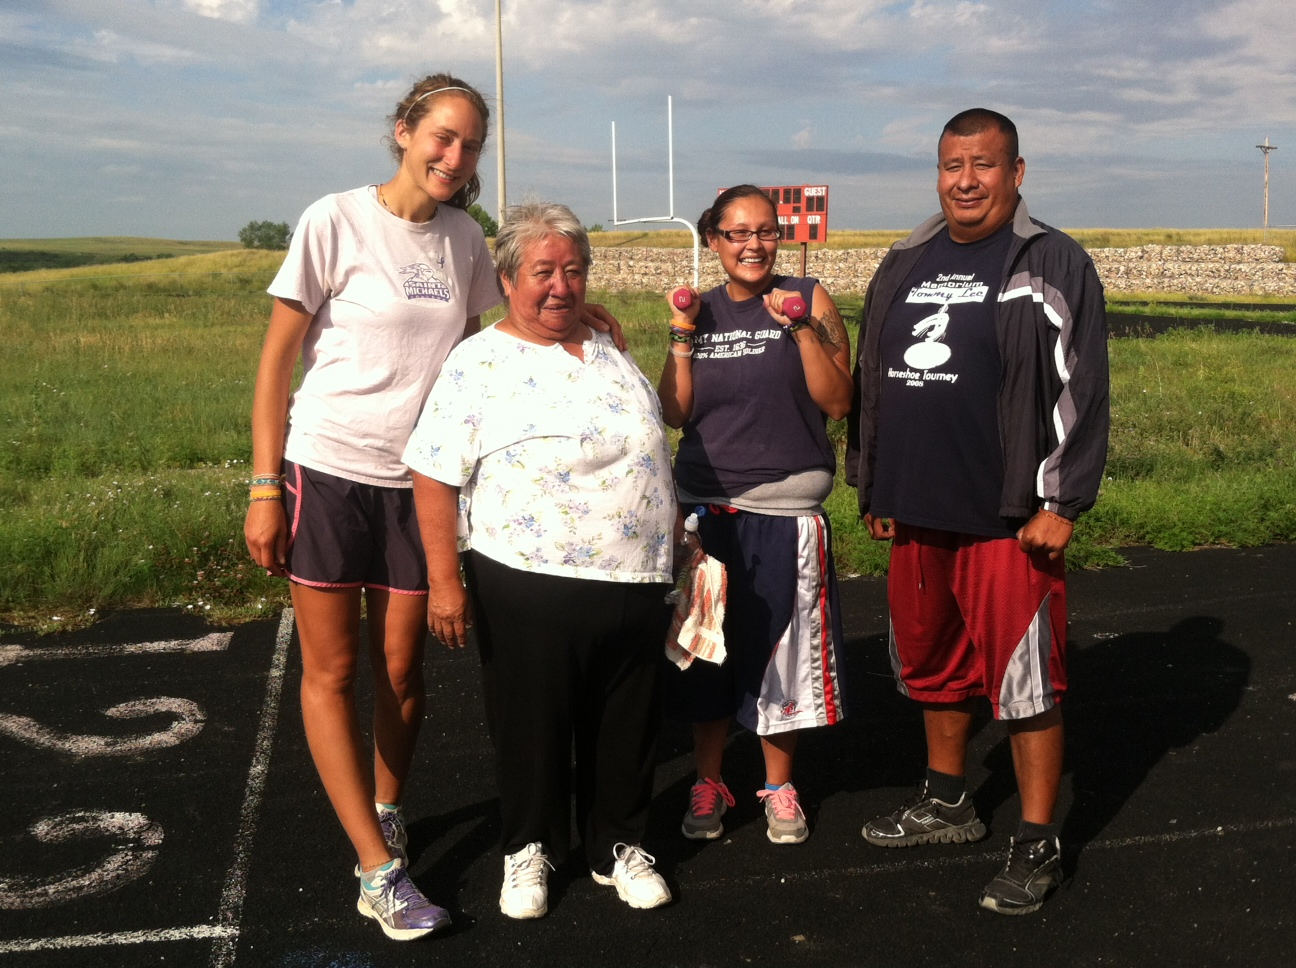 Walking a morning mile to create healthful practices